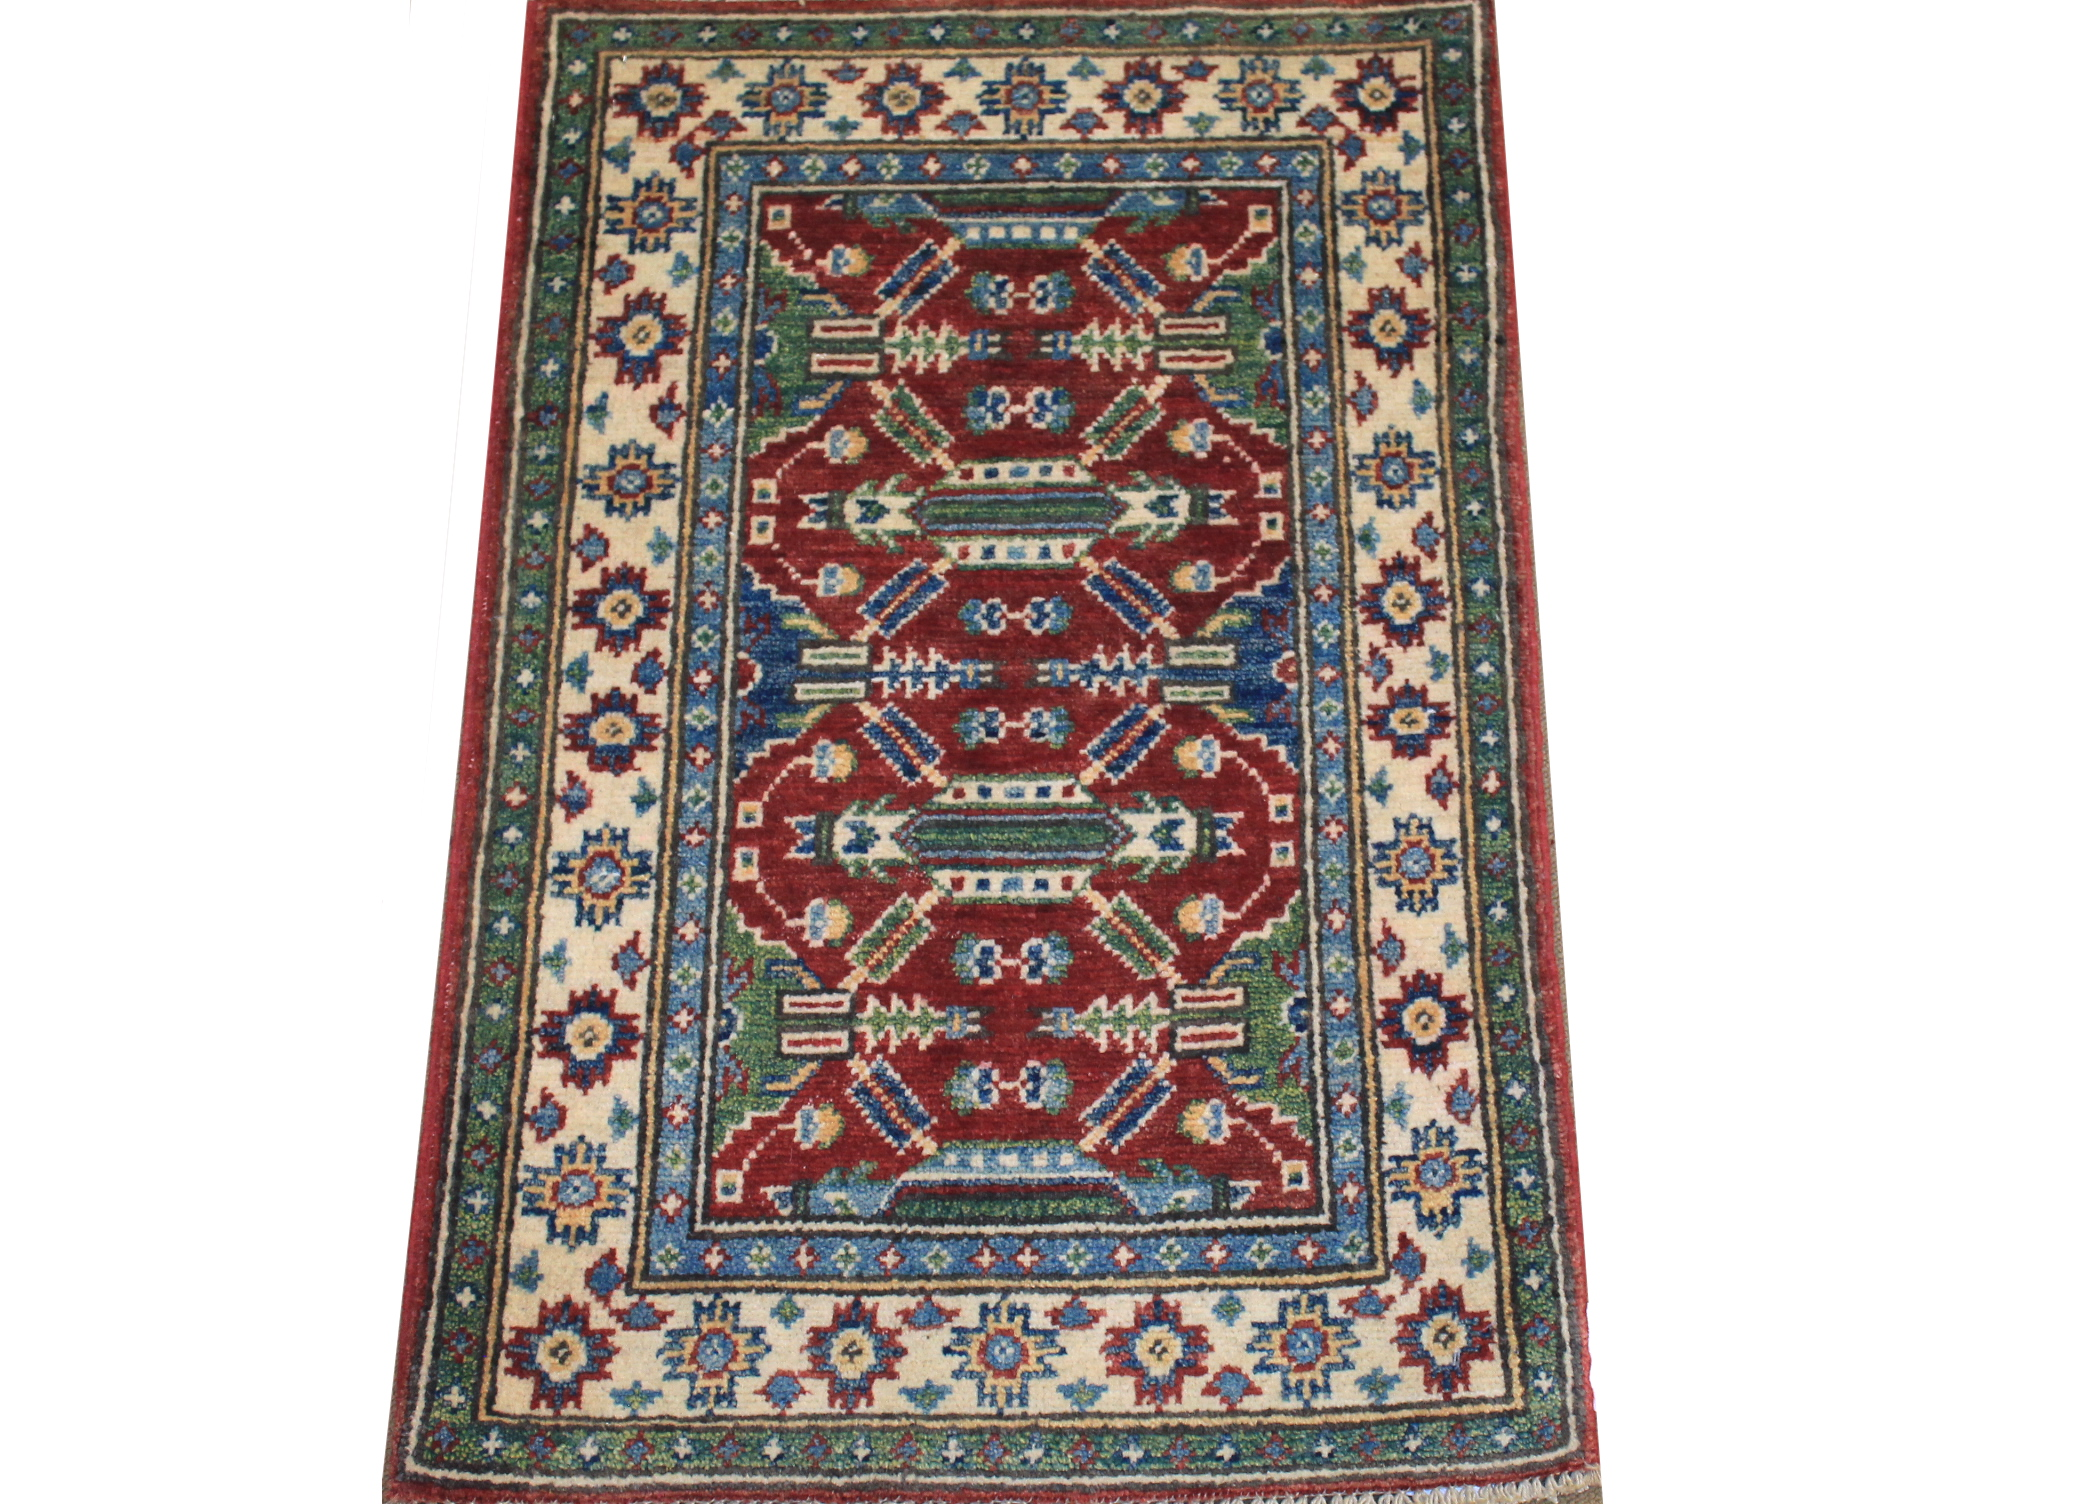 2X3 Kazak Hand Knotted Wool Area Rug - MR024533